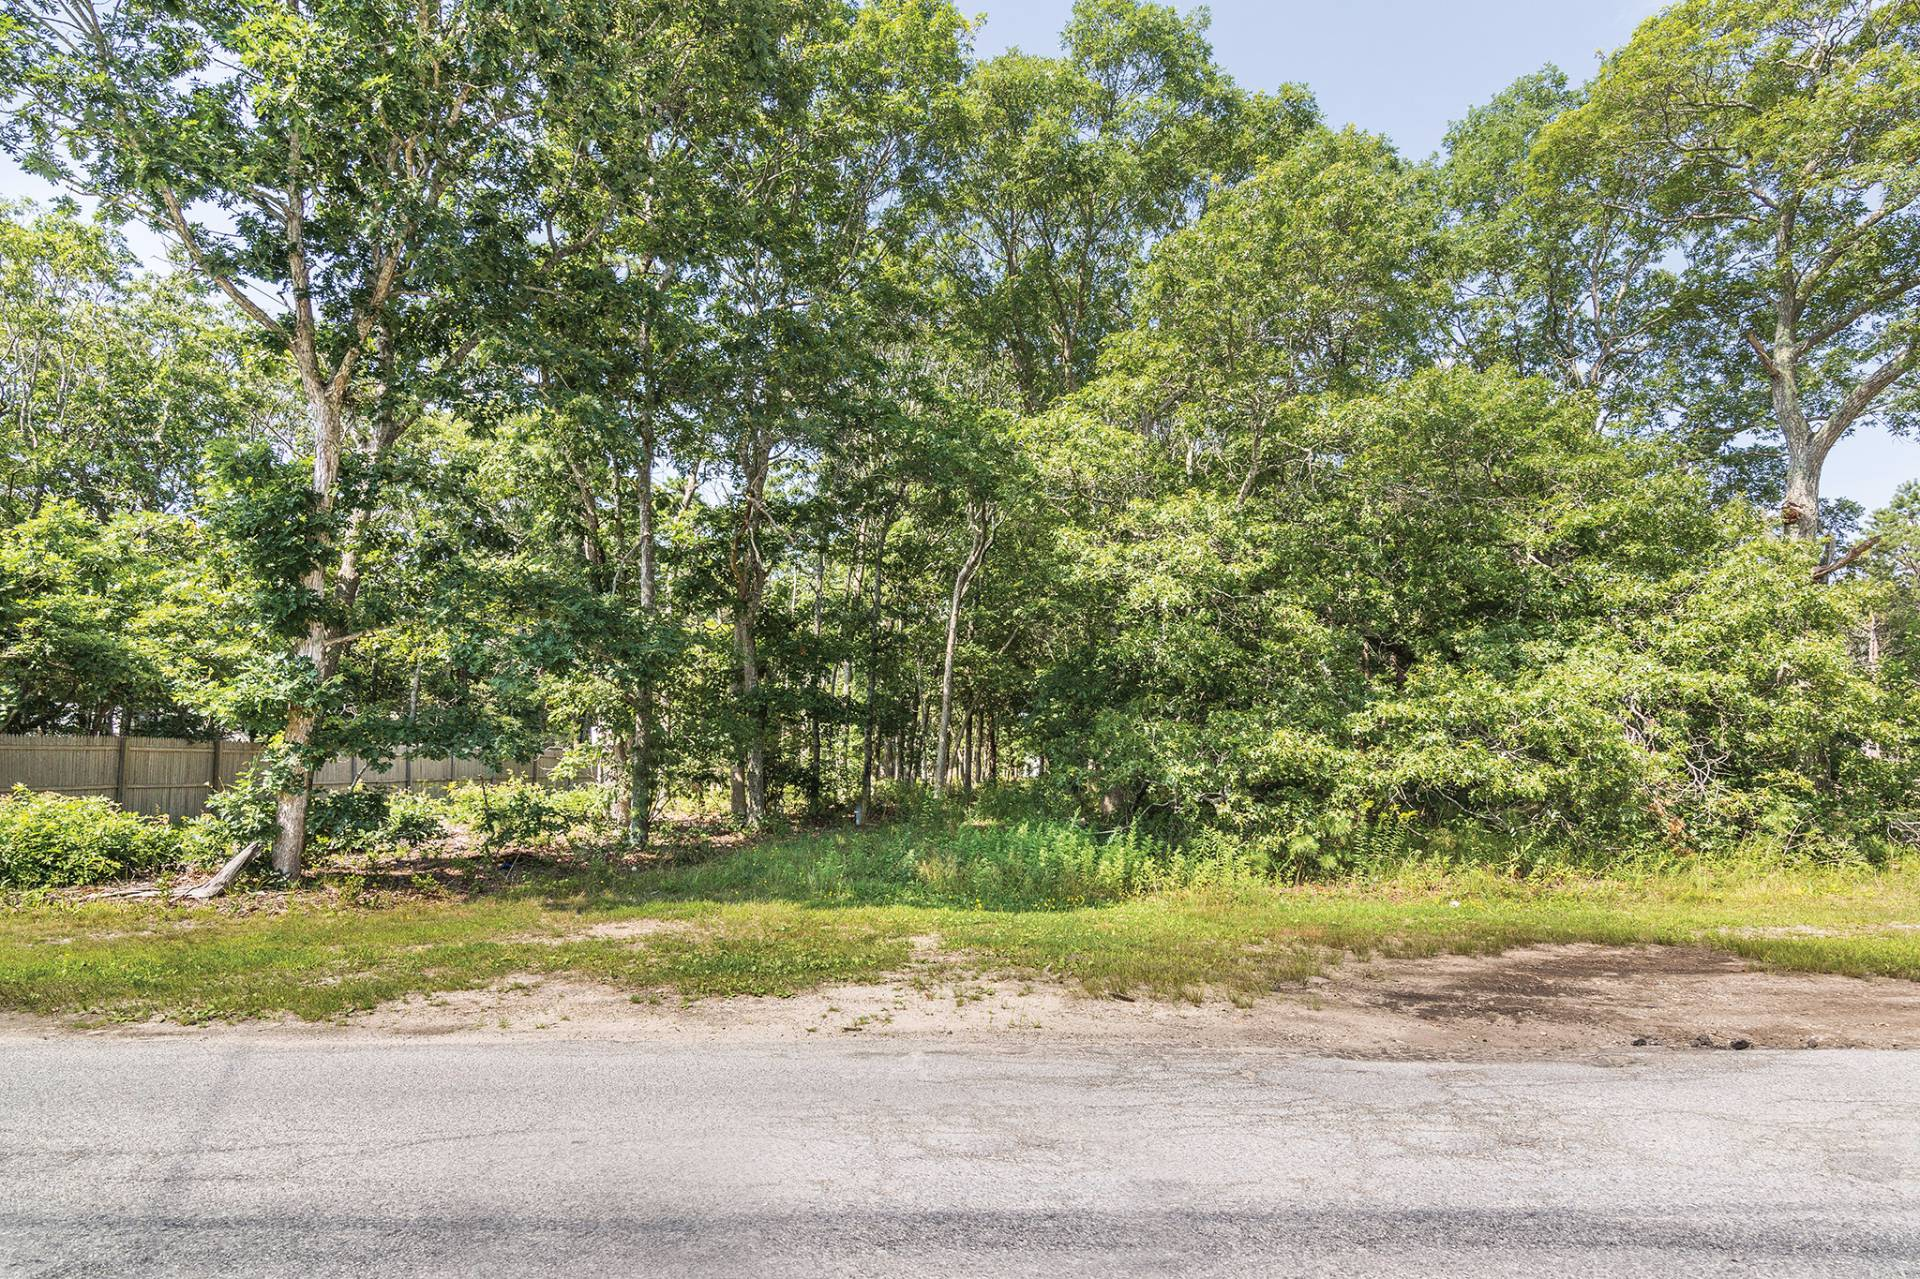 Land for Sale at One Acre Lot In Quogue Village Quogue, New York